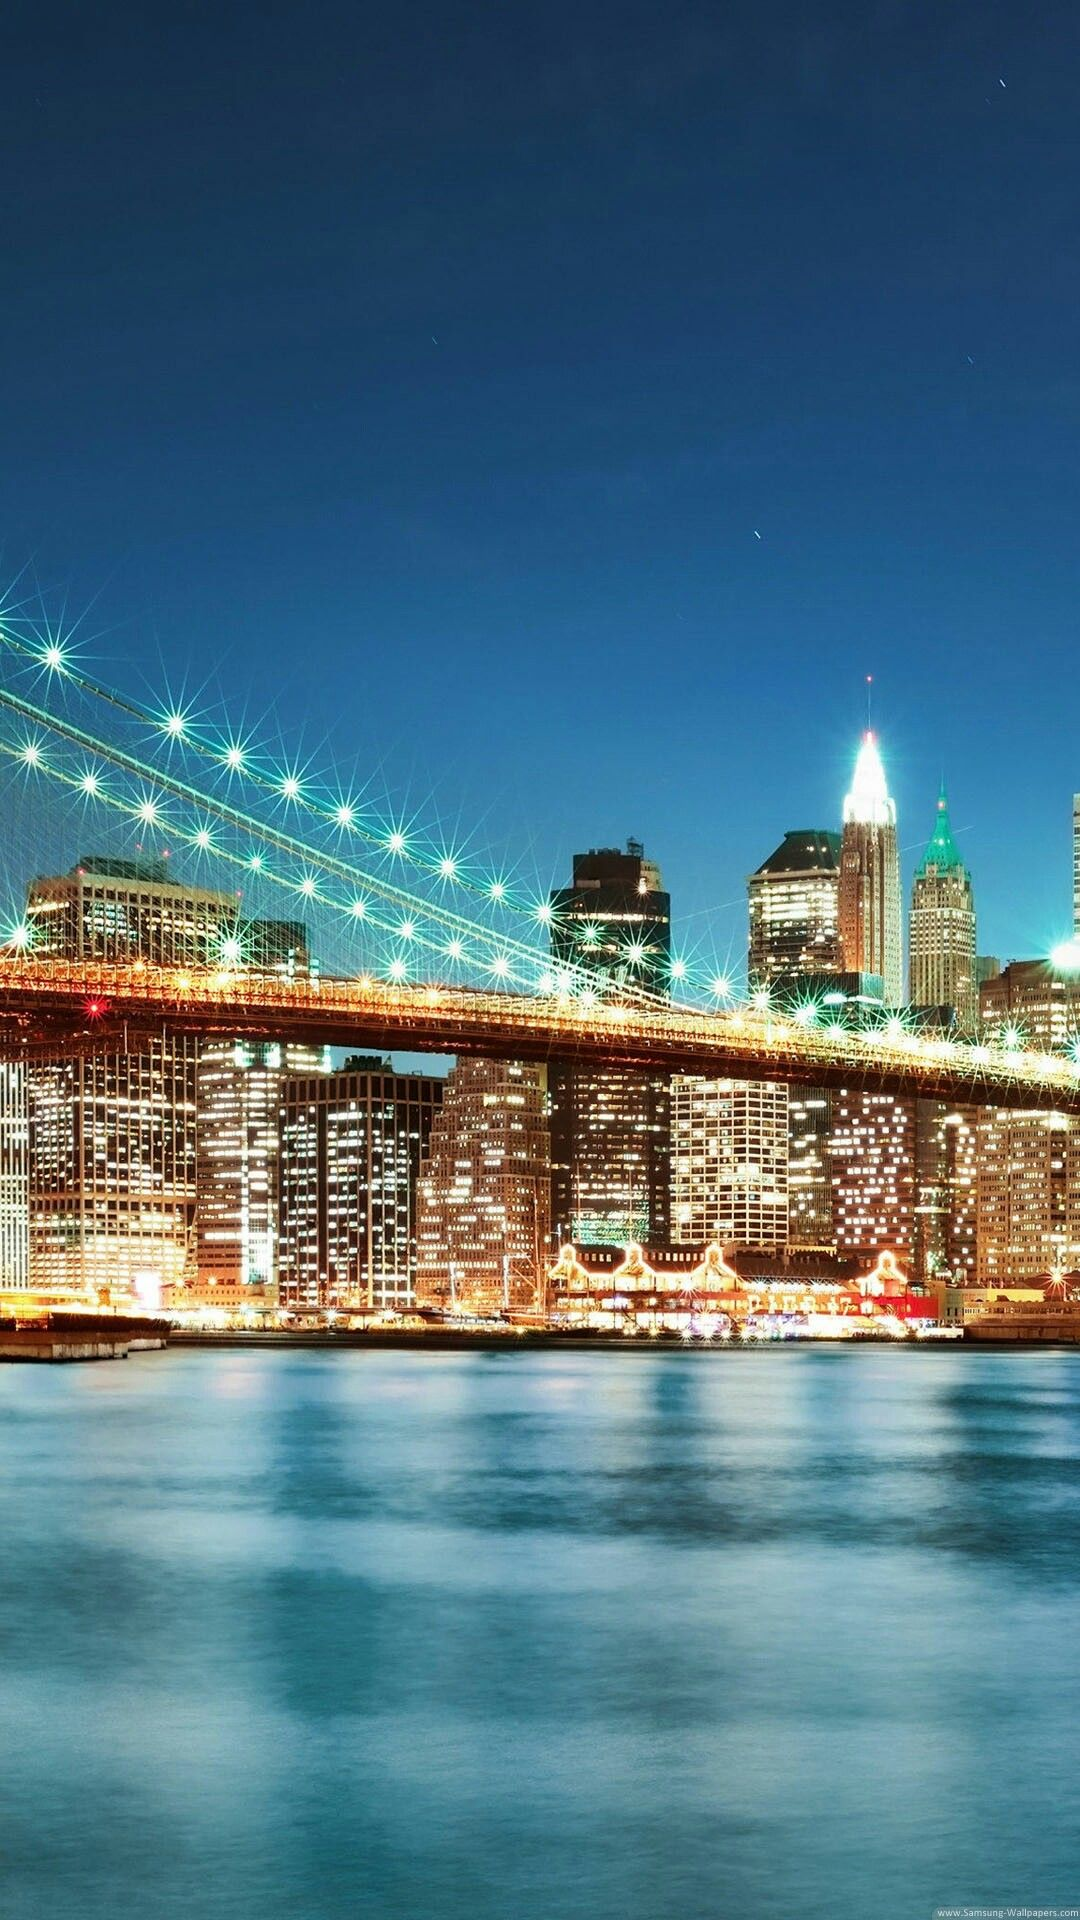 Pin By Nikkladesigns On New York Wallpaper City Wallpaper Iphone Wallpaper Bts City Iphone Wallpaper